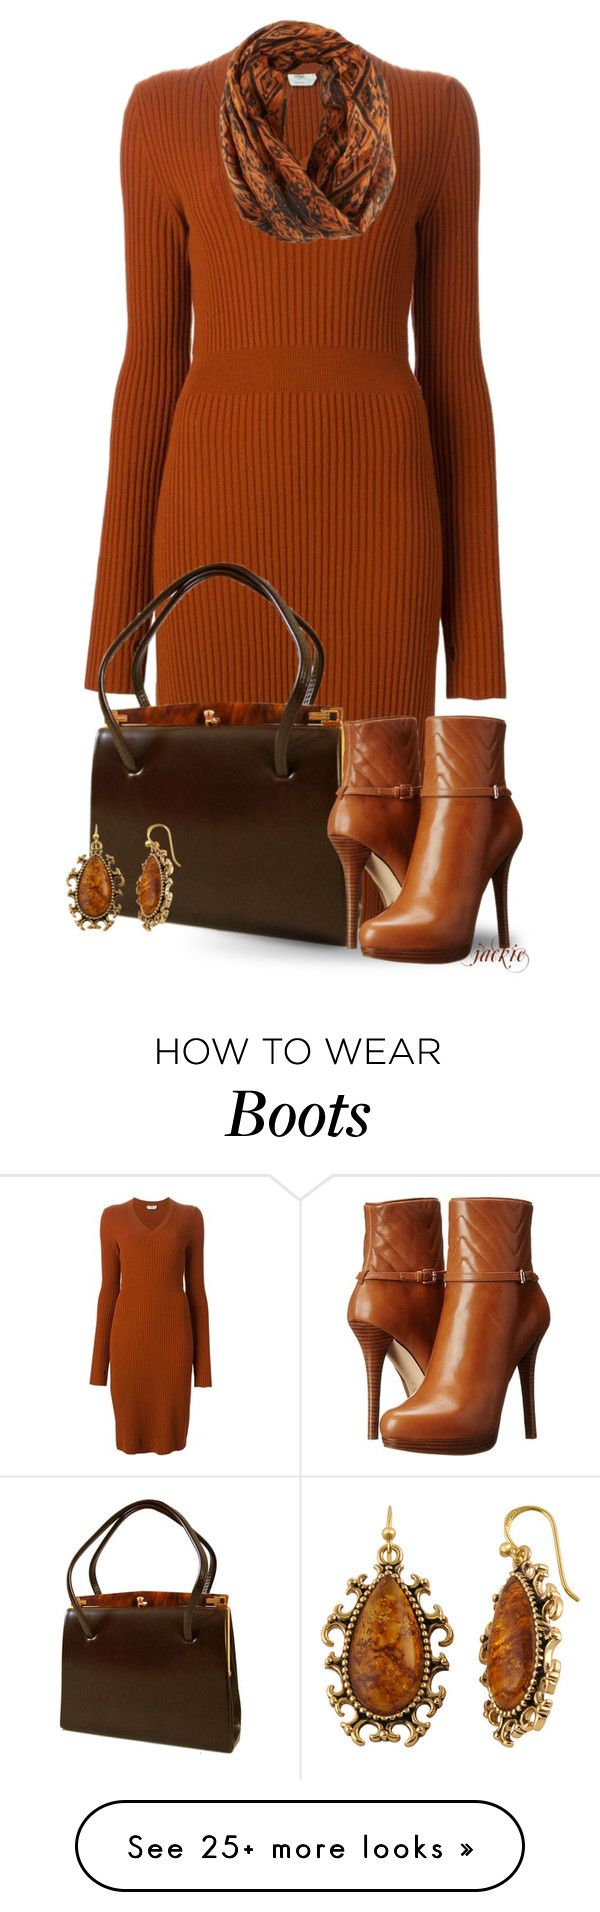 """""""Sweater Dress and Boots"""" by jackie22 on Polyvore featuring moda, Fendi, MICHAEL Michael Kors, Bay Studio, michaelkors, ankleboots i sweaterdress"""